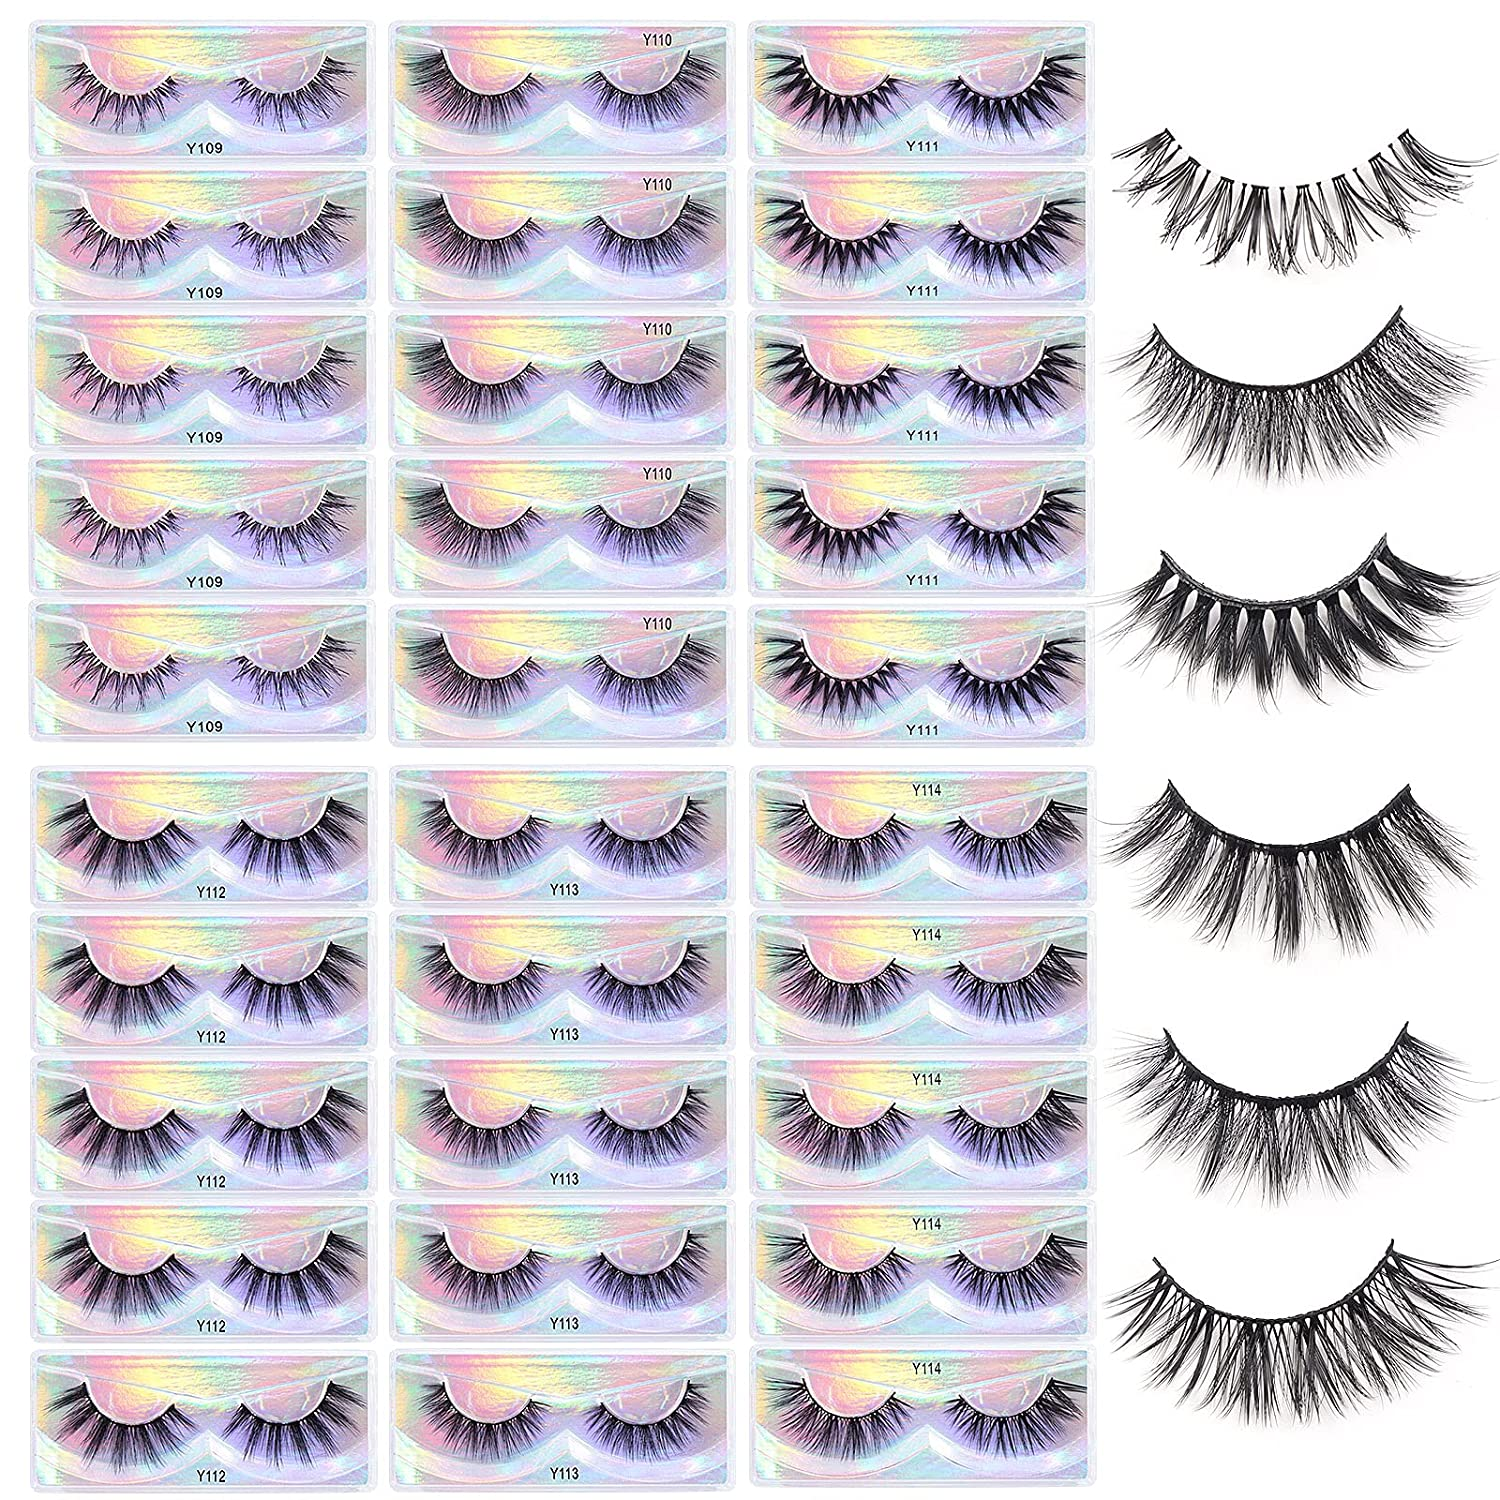 Financial sales sale MAGEFY 30 Pairs Lashes New 6 Ranking TOP1 Natural Style Eyelashes to Dr Look